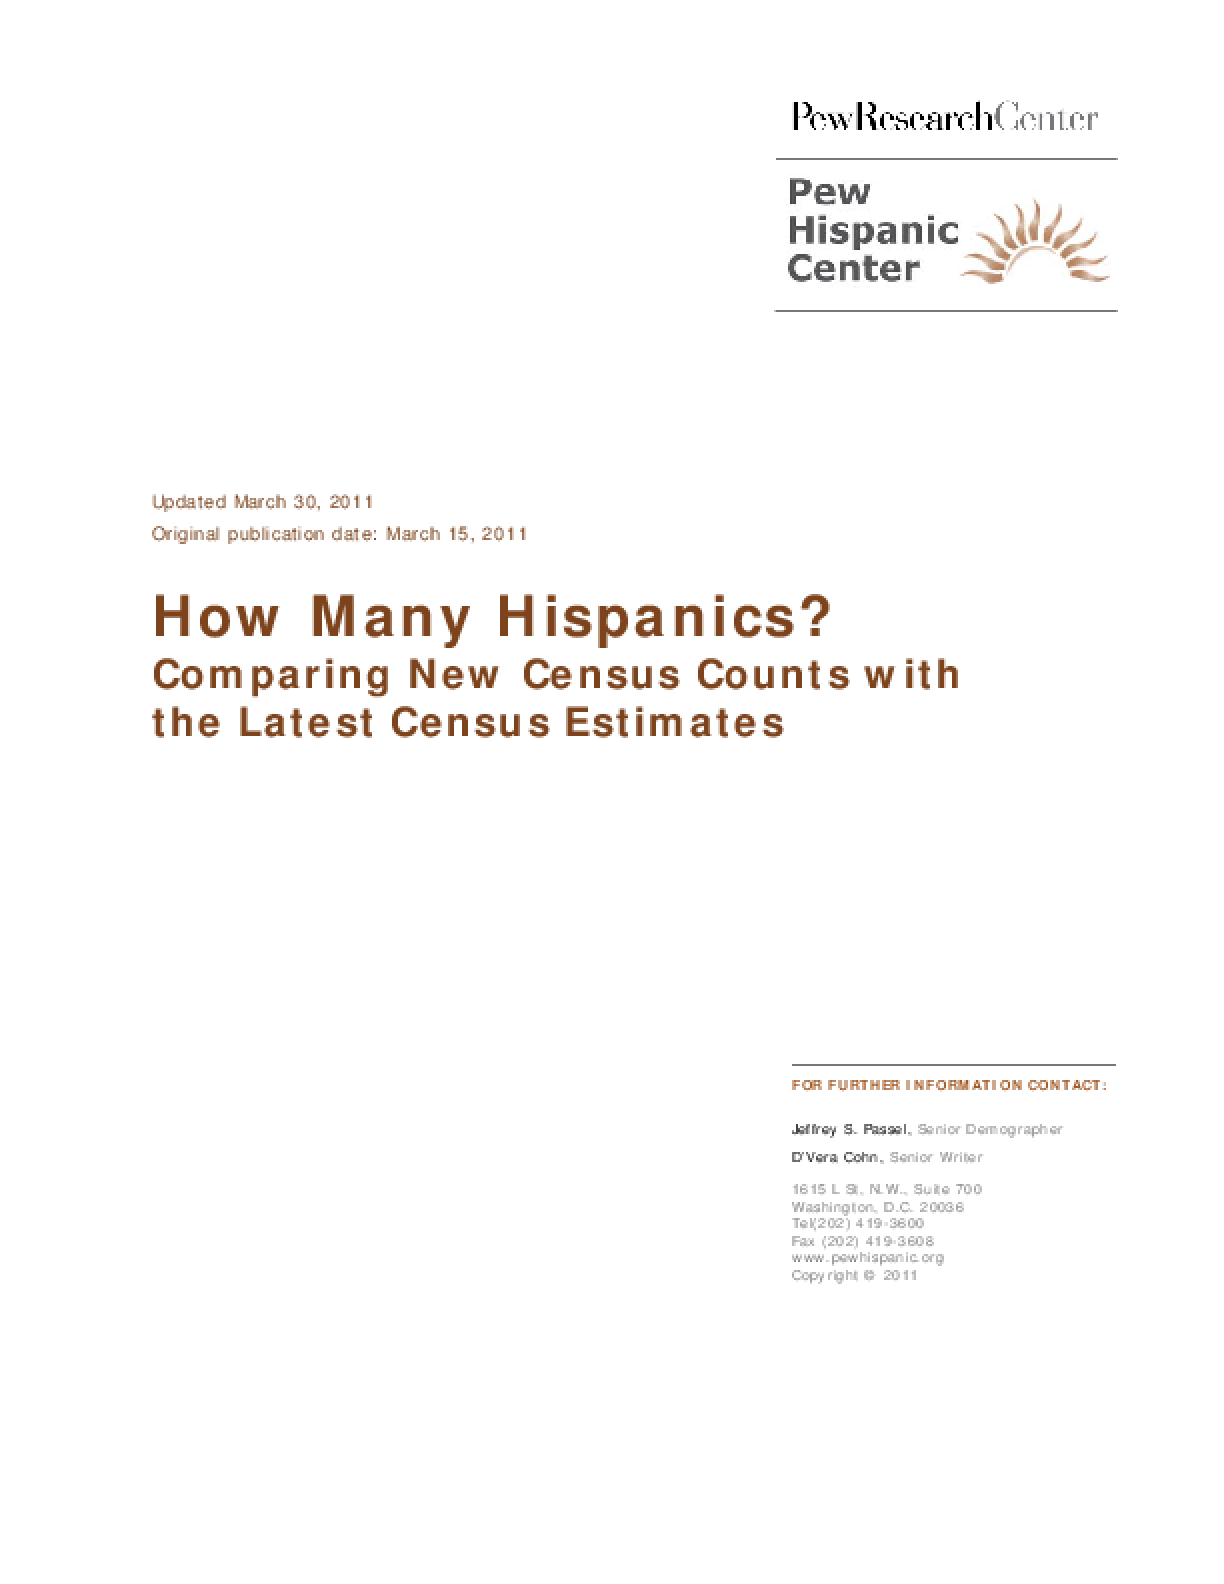 How Many Hispanics? Comparing New Census Counts With the Latest Census Estimates